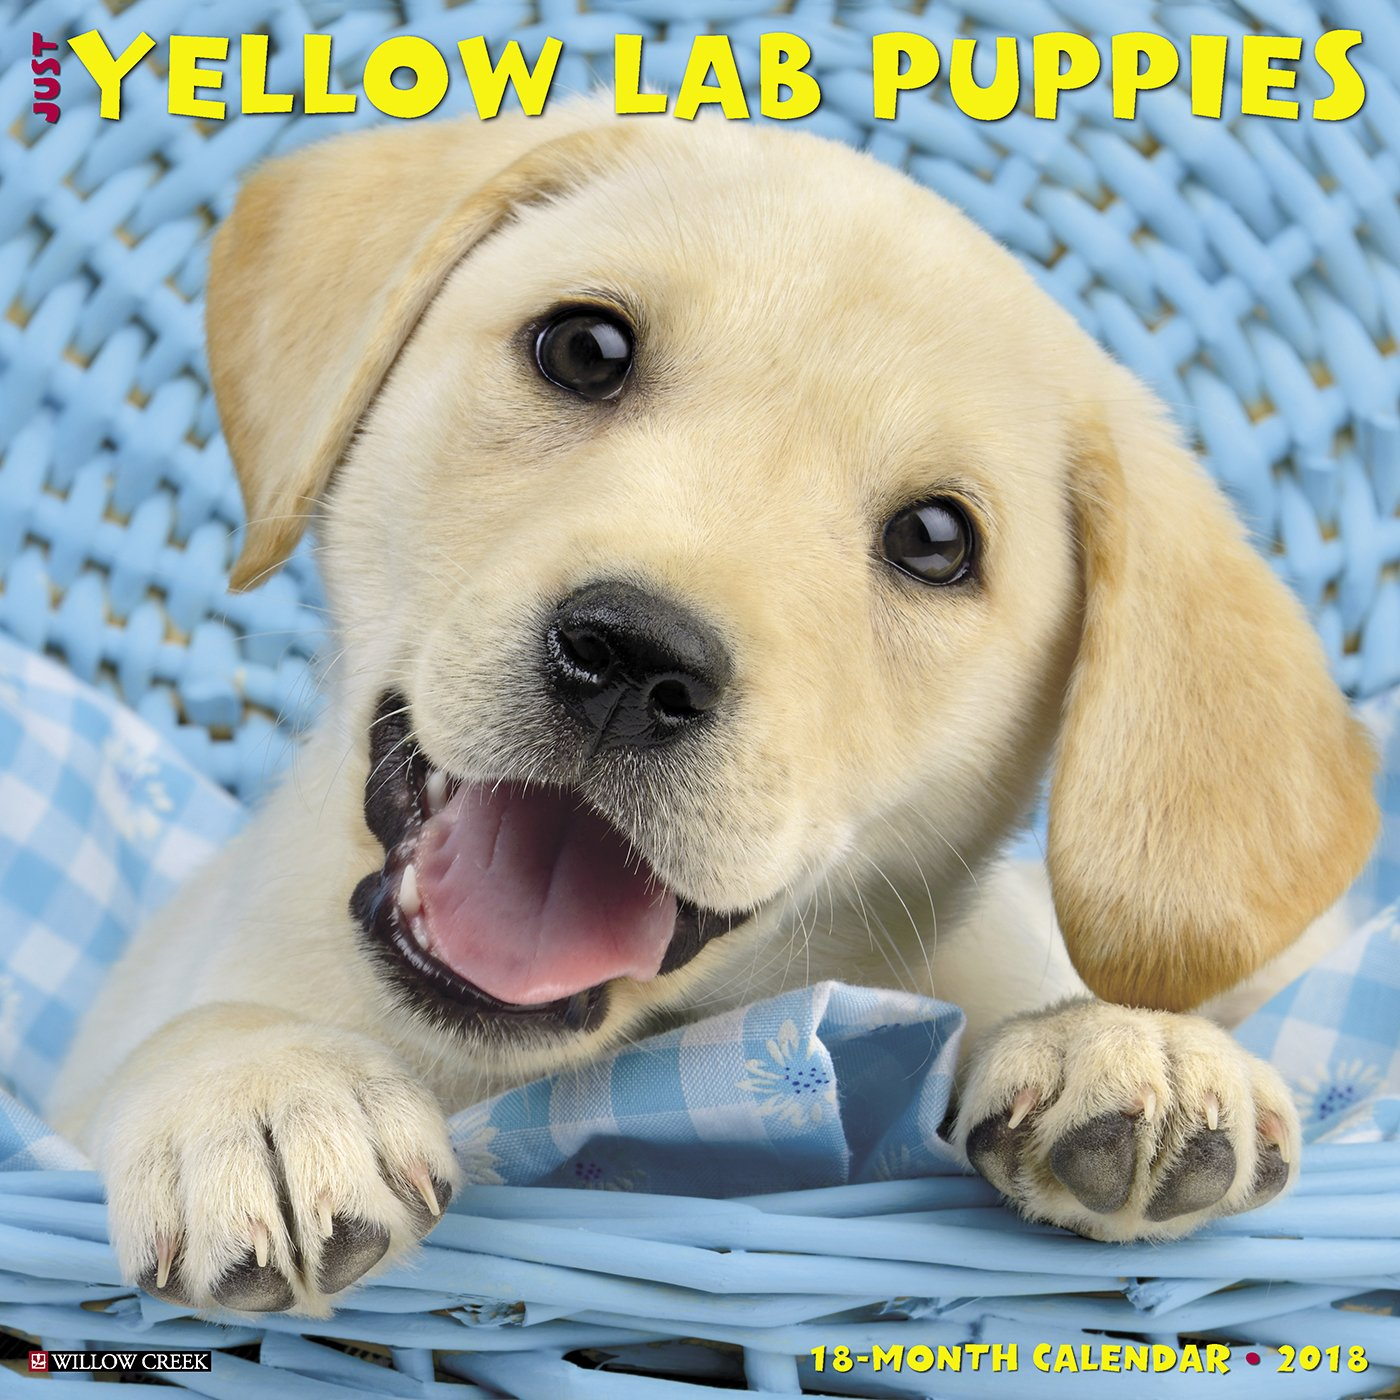 Just Yellow Lab Puppies 2018 Calendar Willow Creek Press